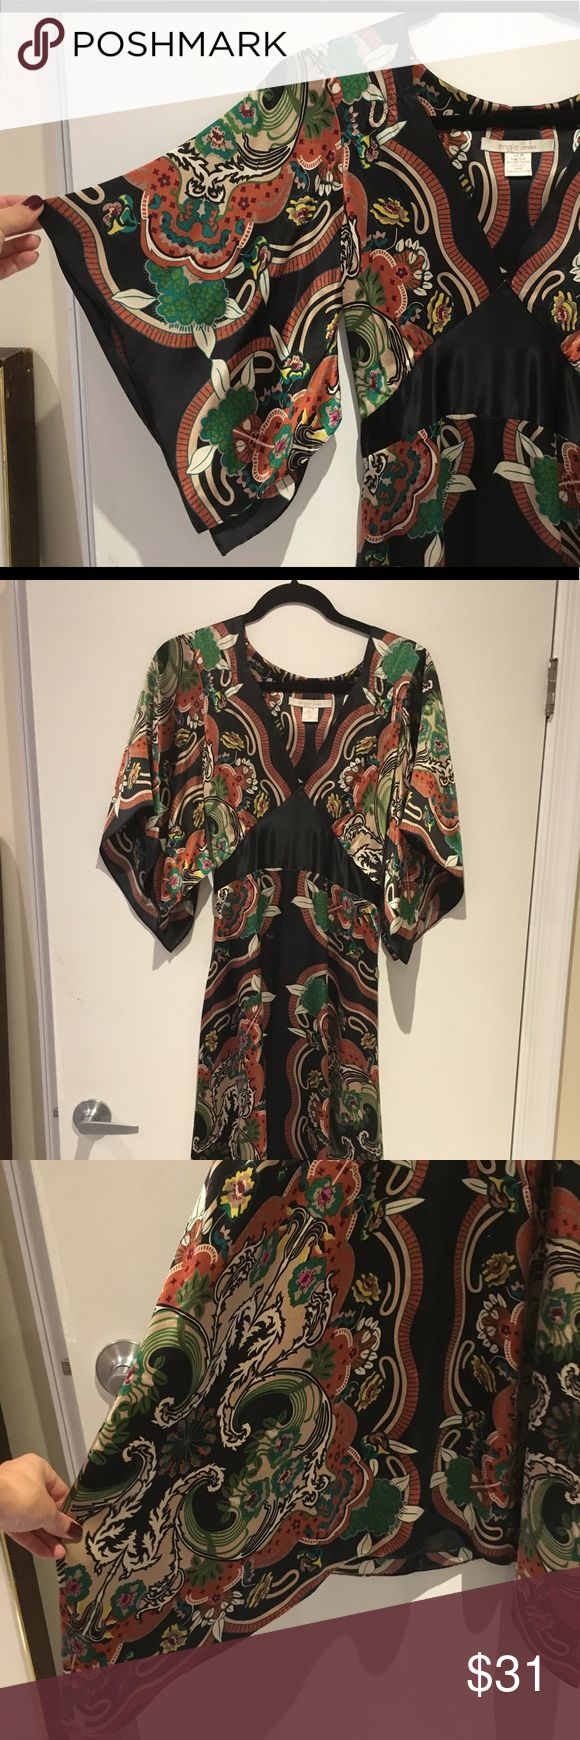 Kimono Satin-like Dress from Sale Off Fifth ♥️😺 Excellent condition Dress - very easily worn for wedding or reception. Love the kimono sleeves and belt 👀⭐️ Saks Off Fifth Dresses